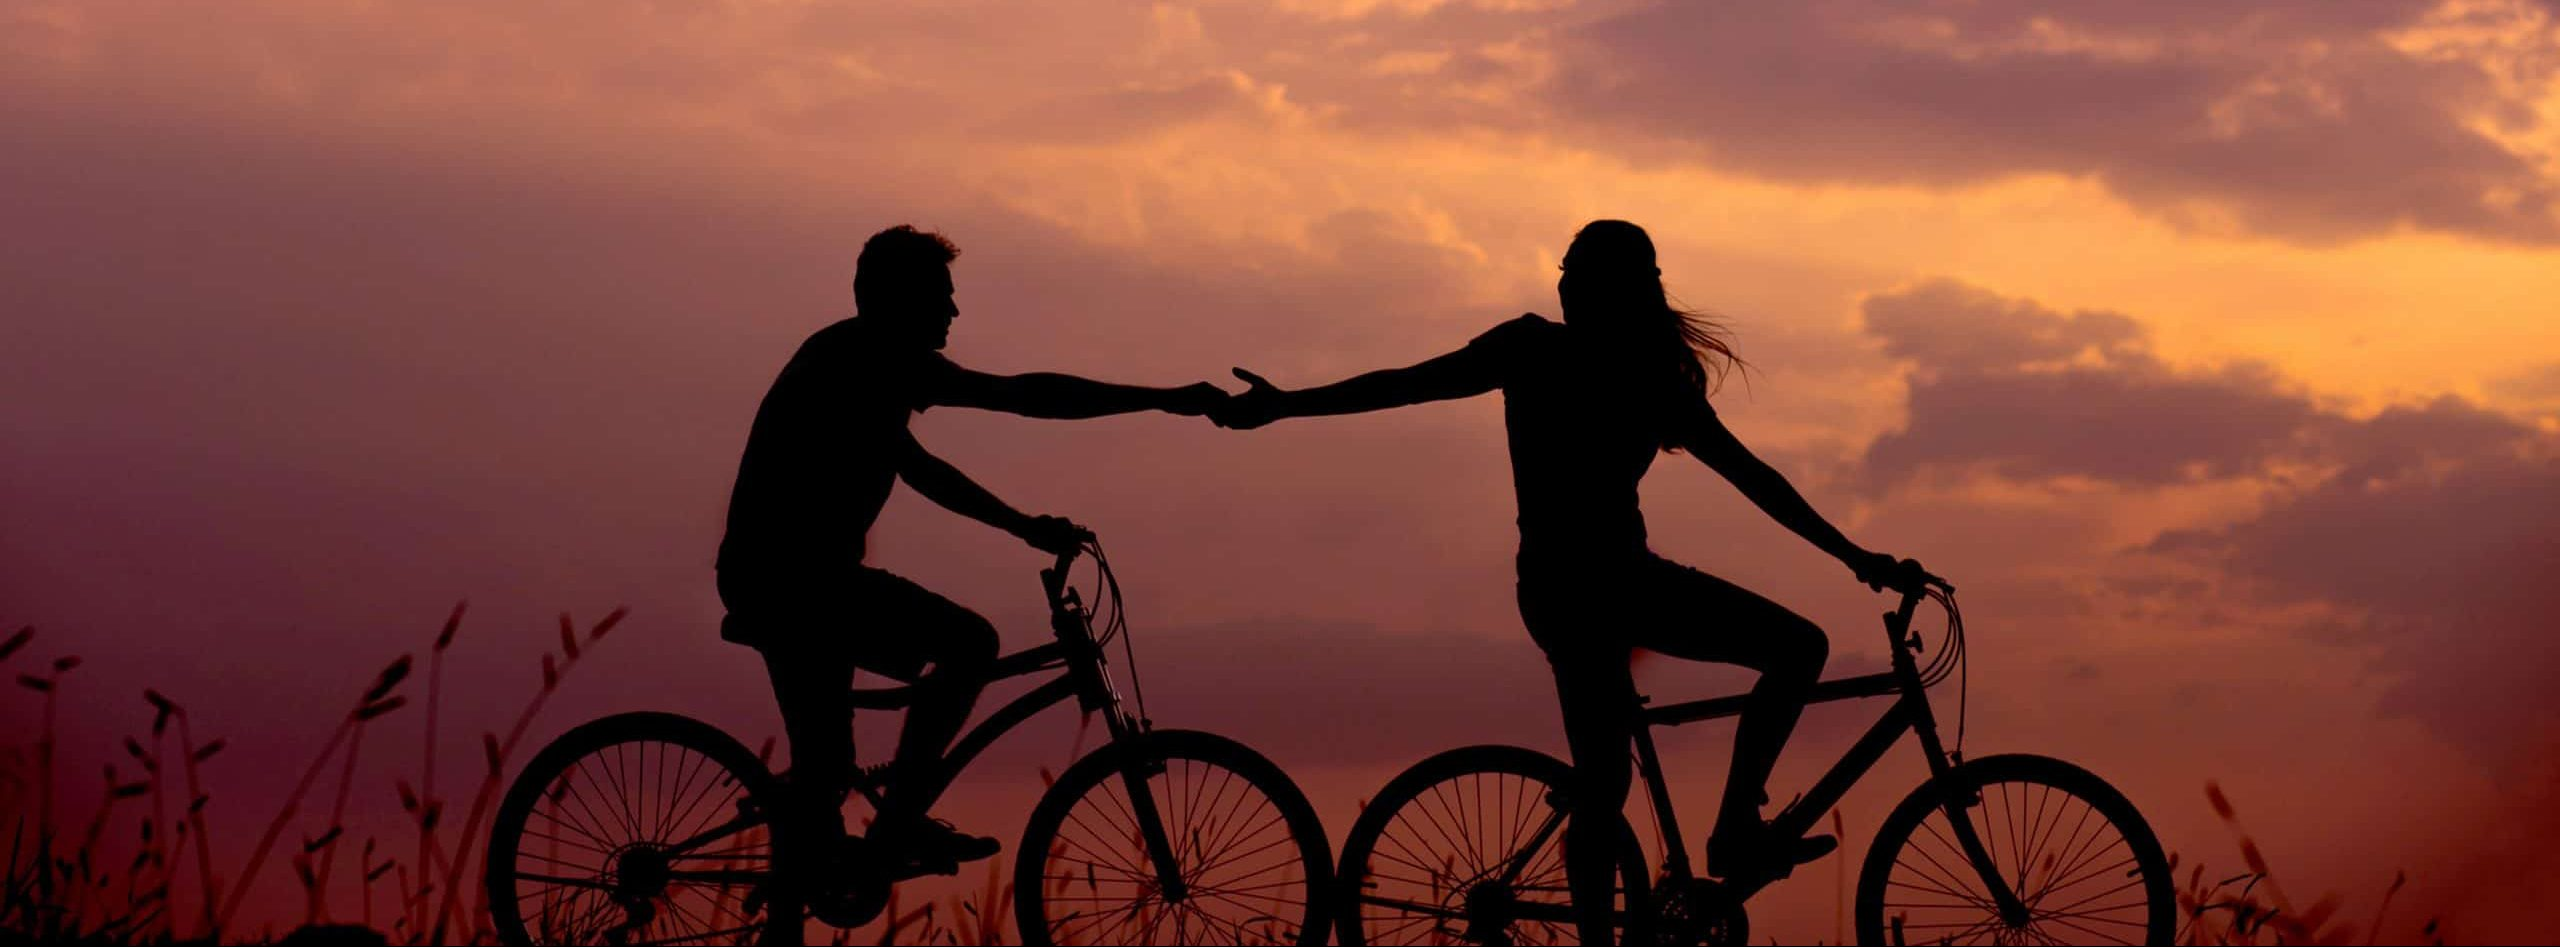 Woman holding man's hand on bicycle